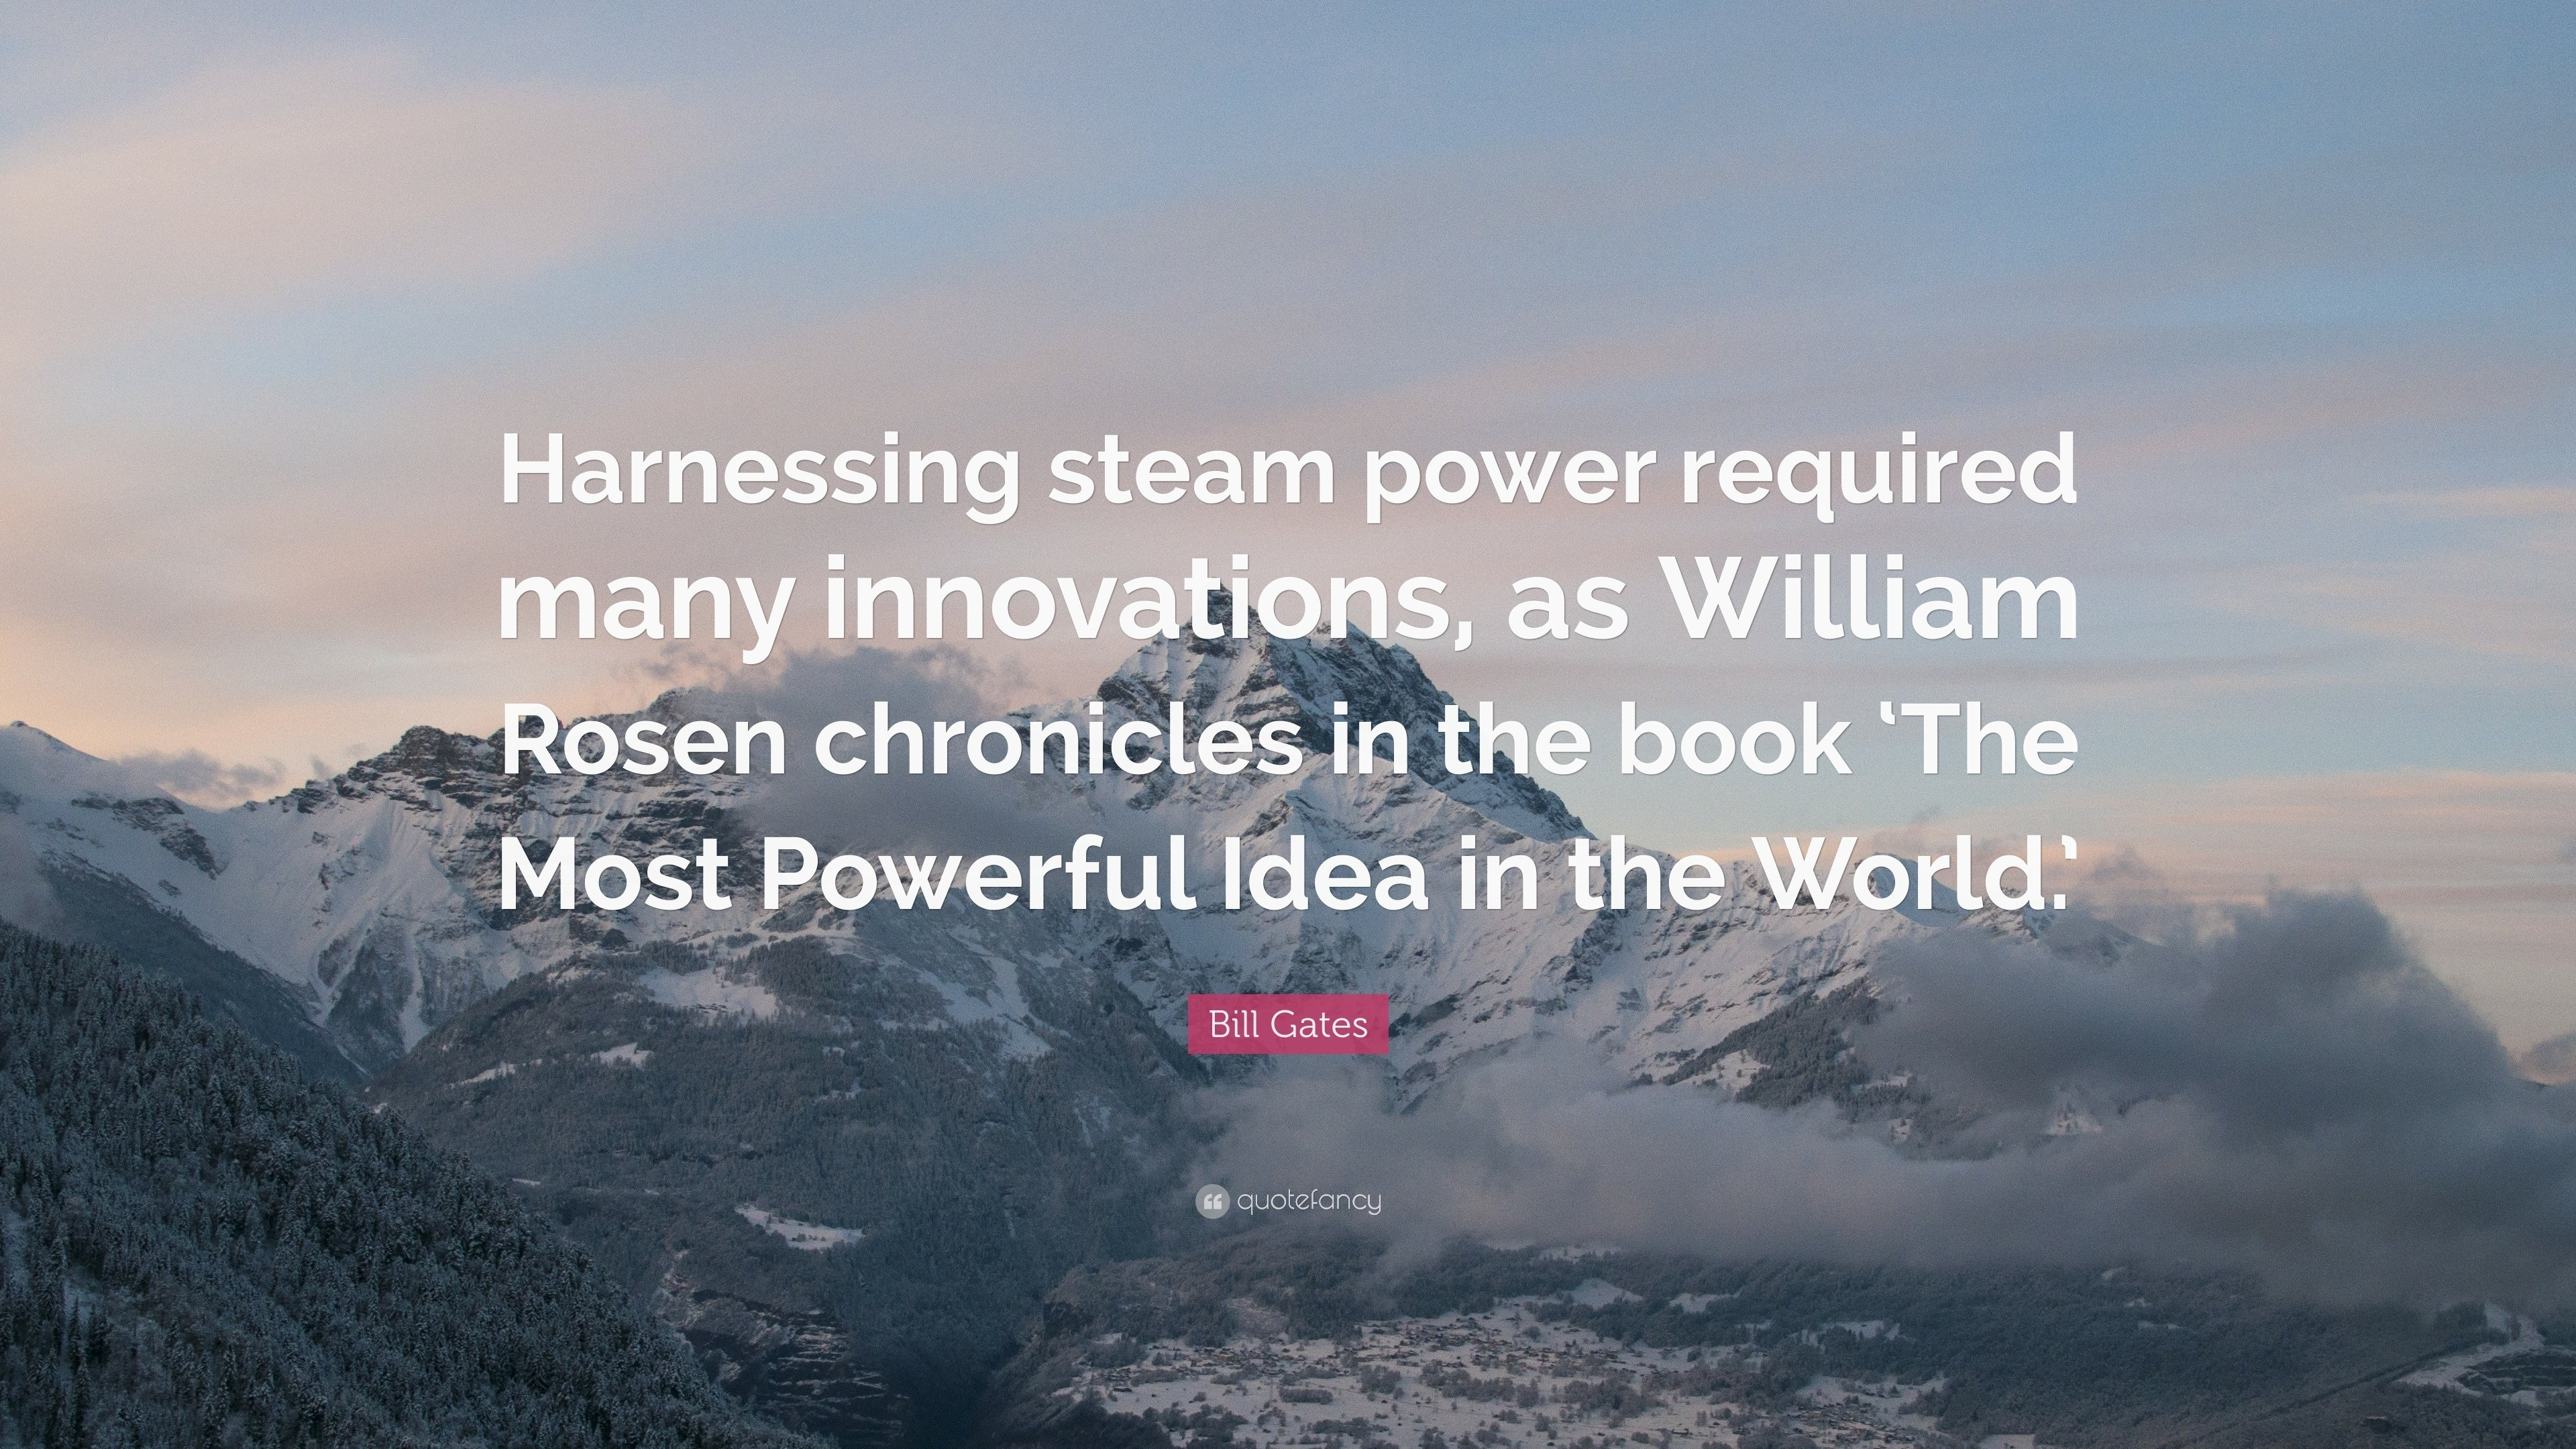 10 Amazing The Most Powerful Idea In The World bill gates quote harnessing steam power required many innovations 2